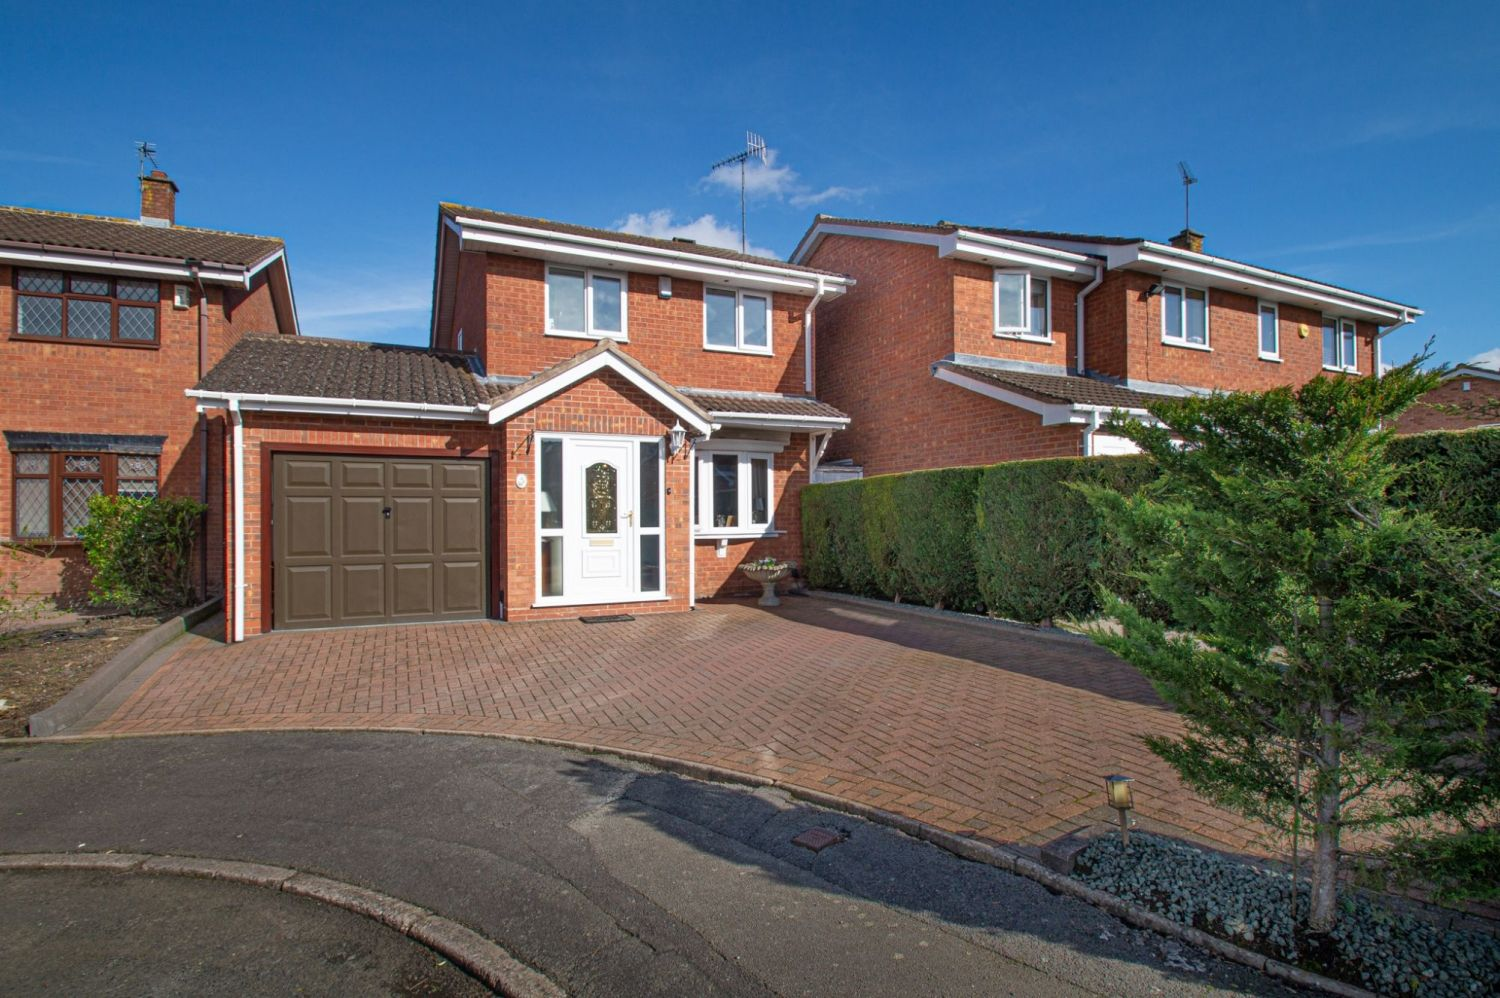 3 bed detached for sale in Broomehill Close, Brierley Hill  - Property Image 1